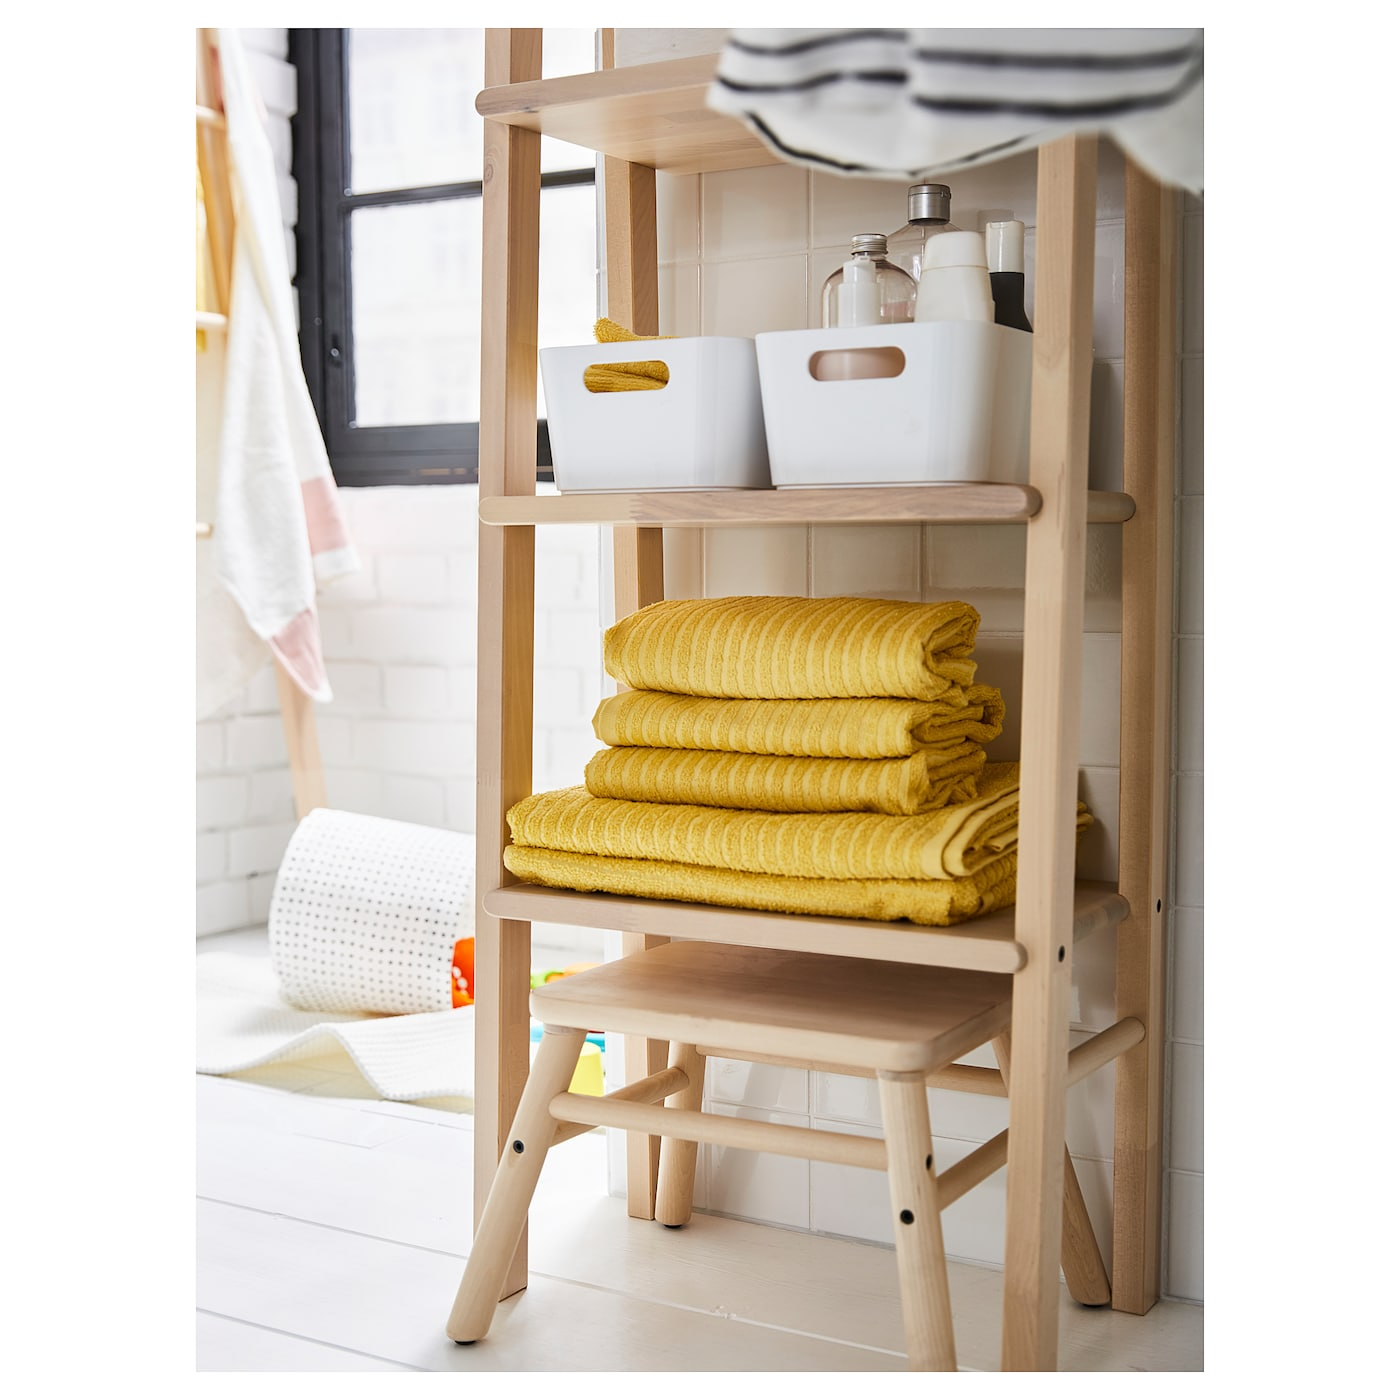 IKEA VILTO step stool Adjustable feet for increased stability and protection against floor moisture.